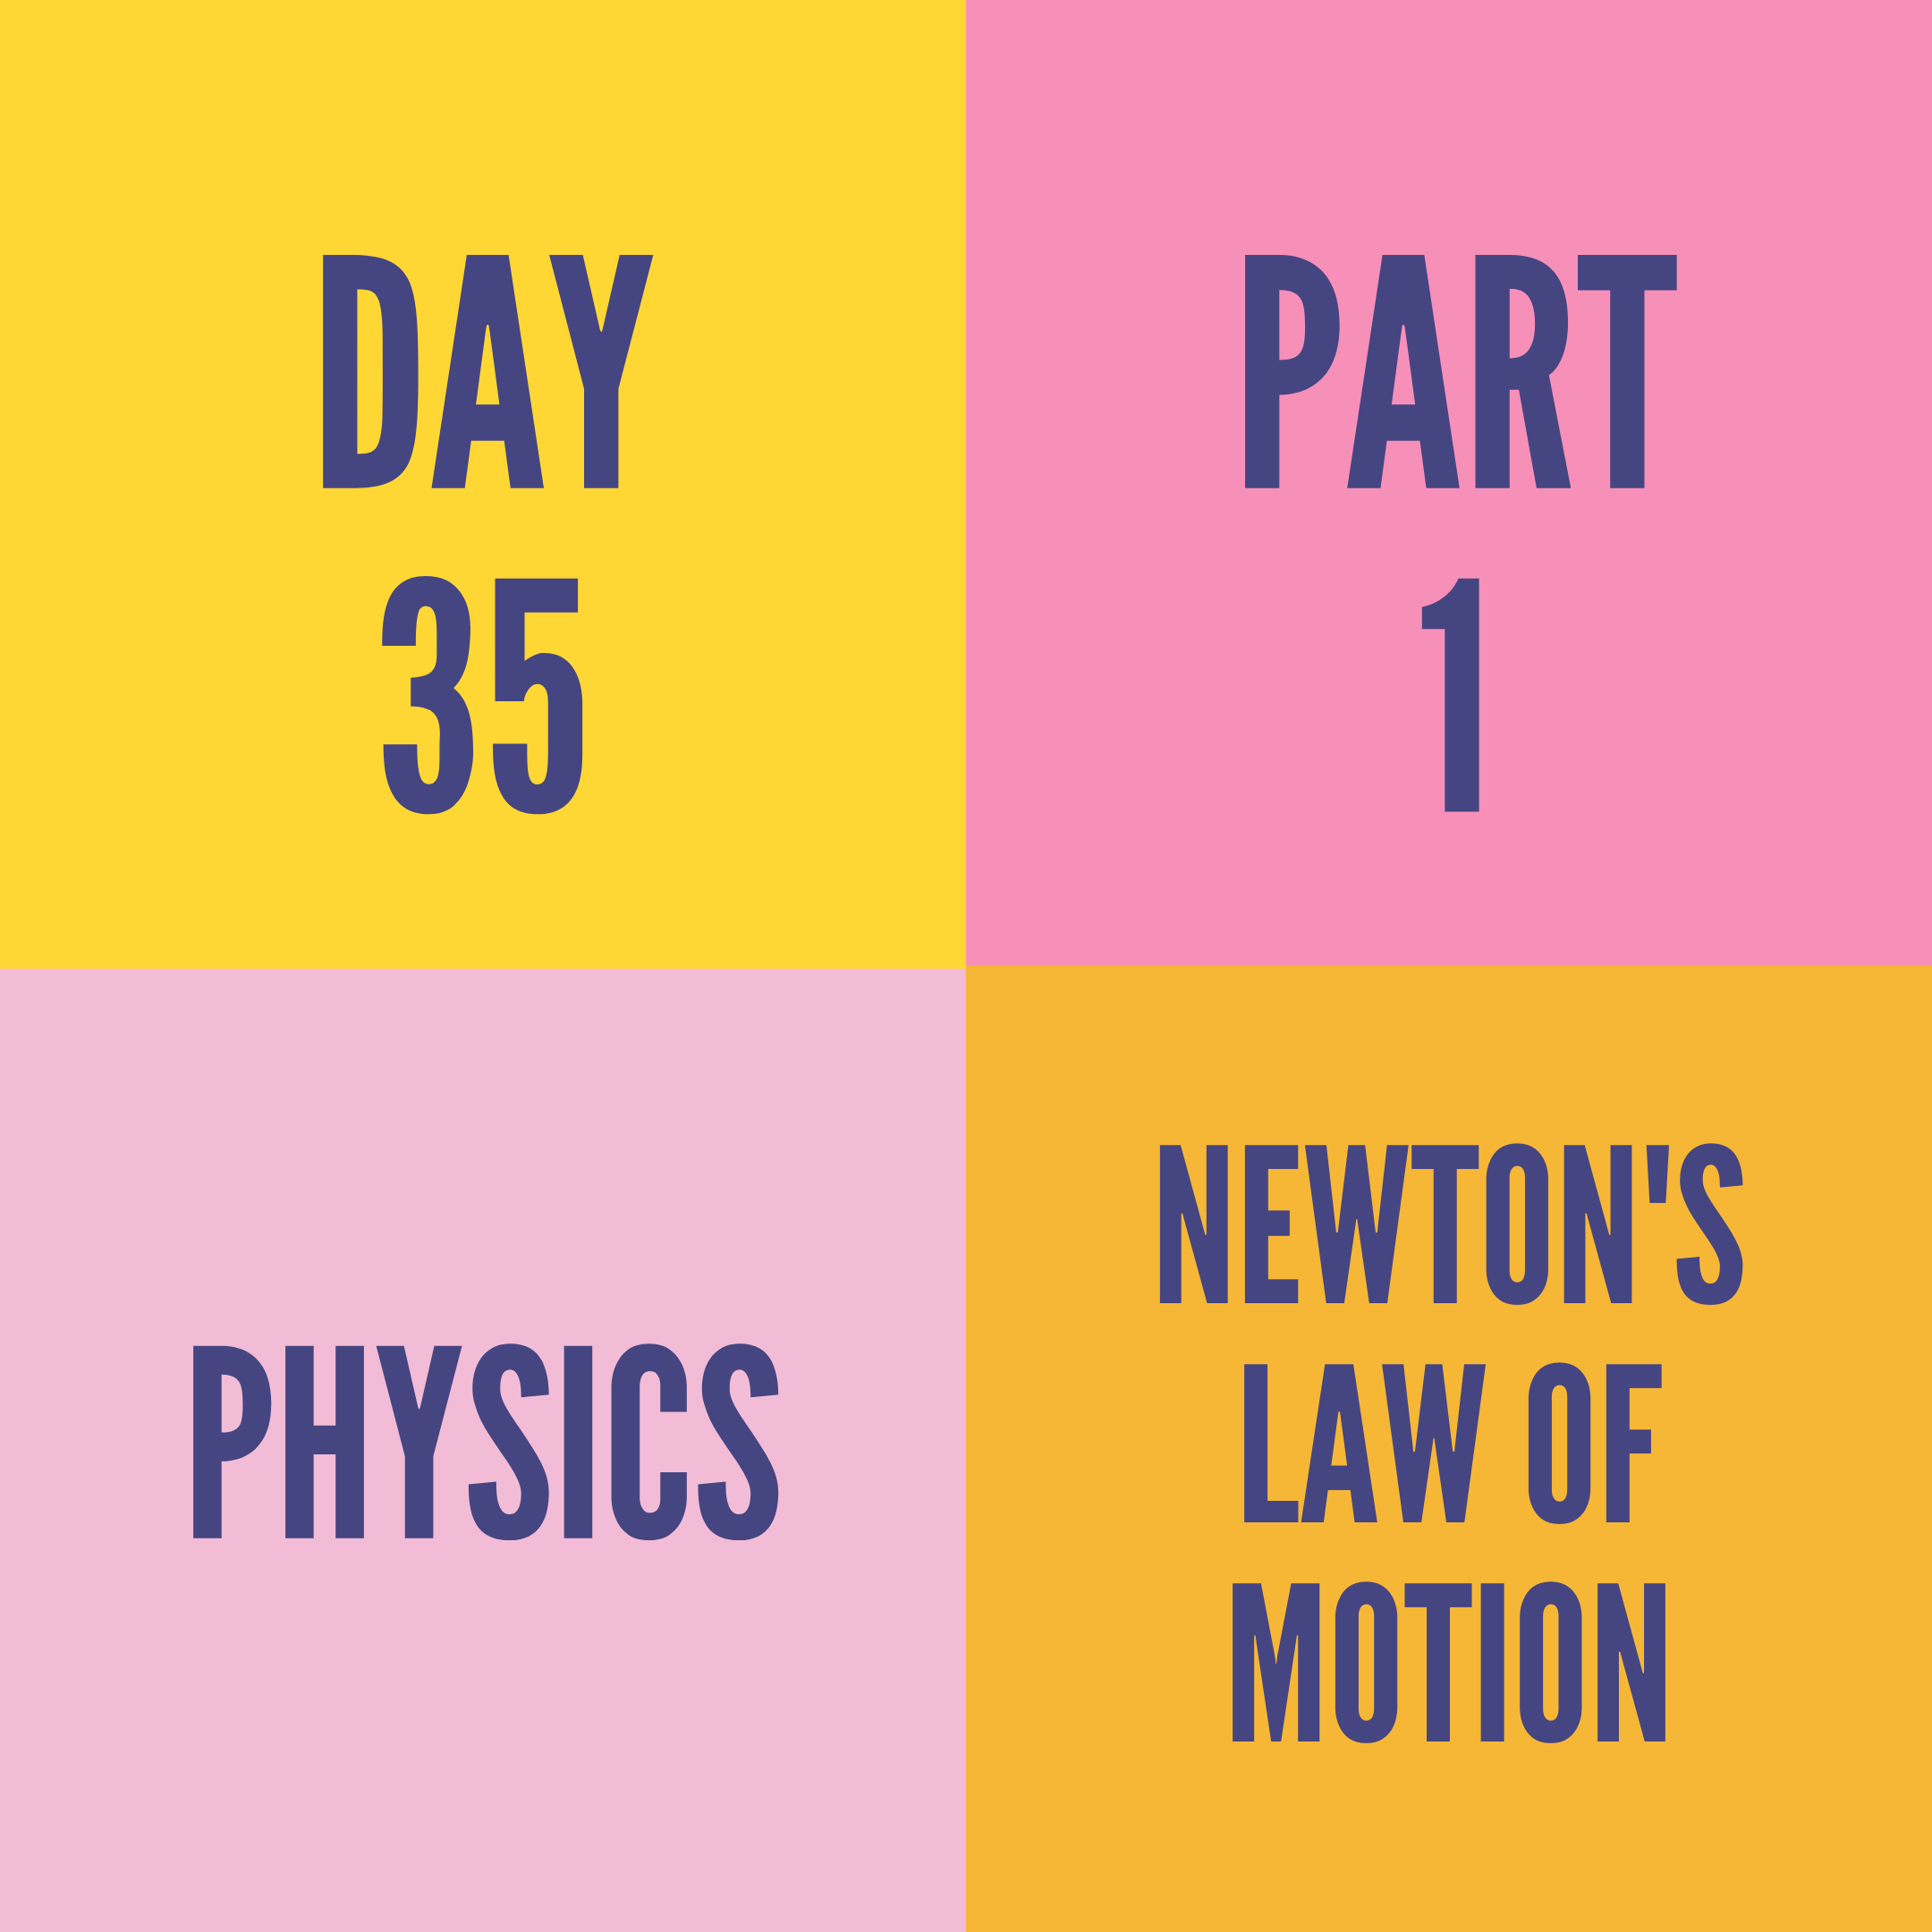 DAY-35 PART-1 NEWTON'S LAW OF MOTION